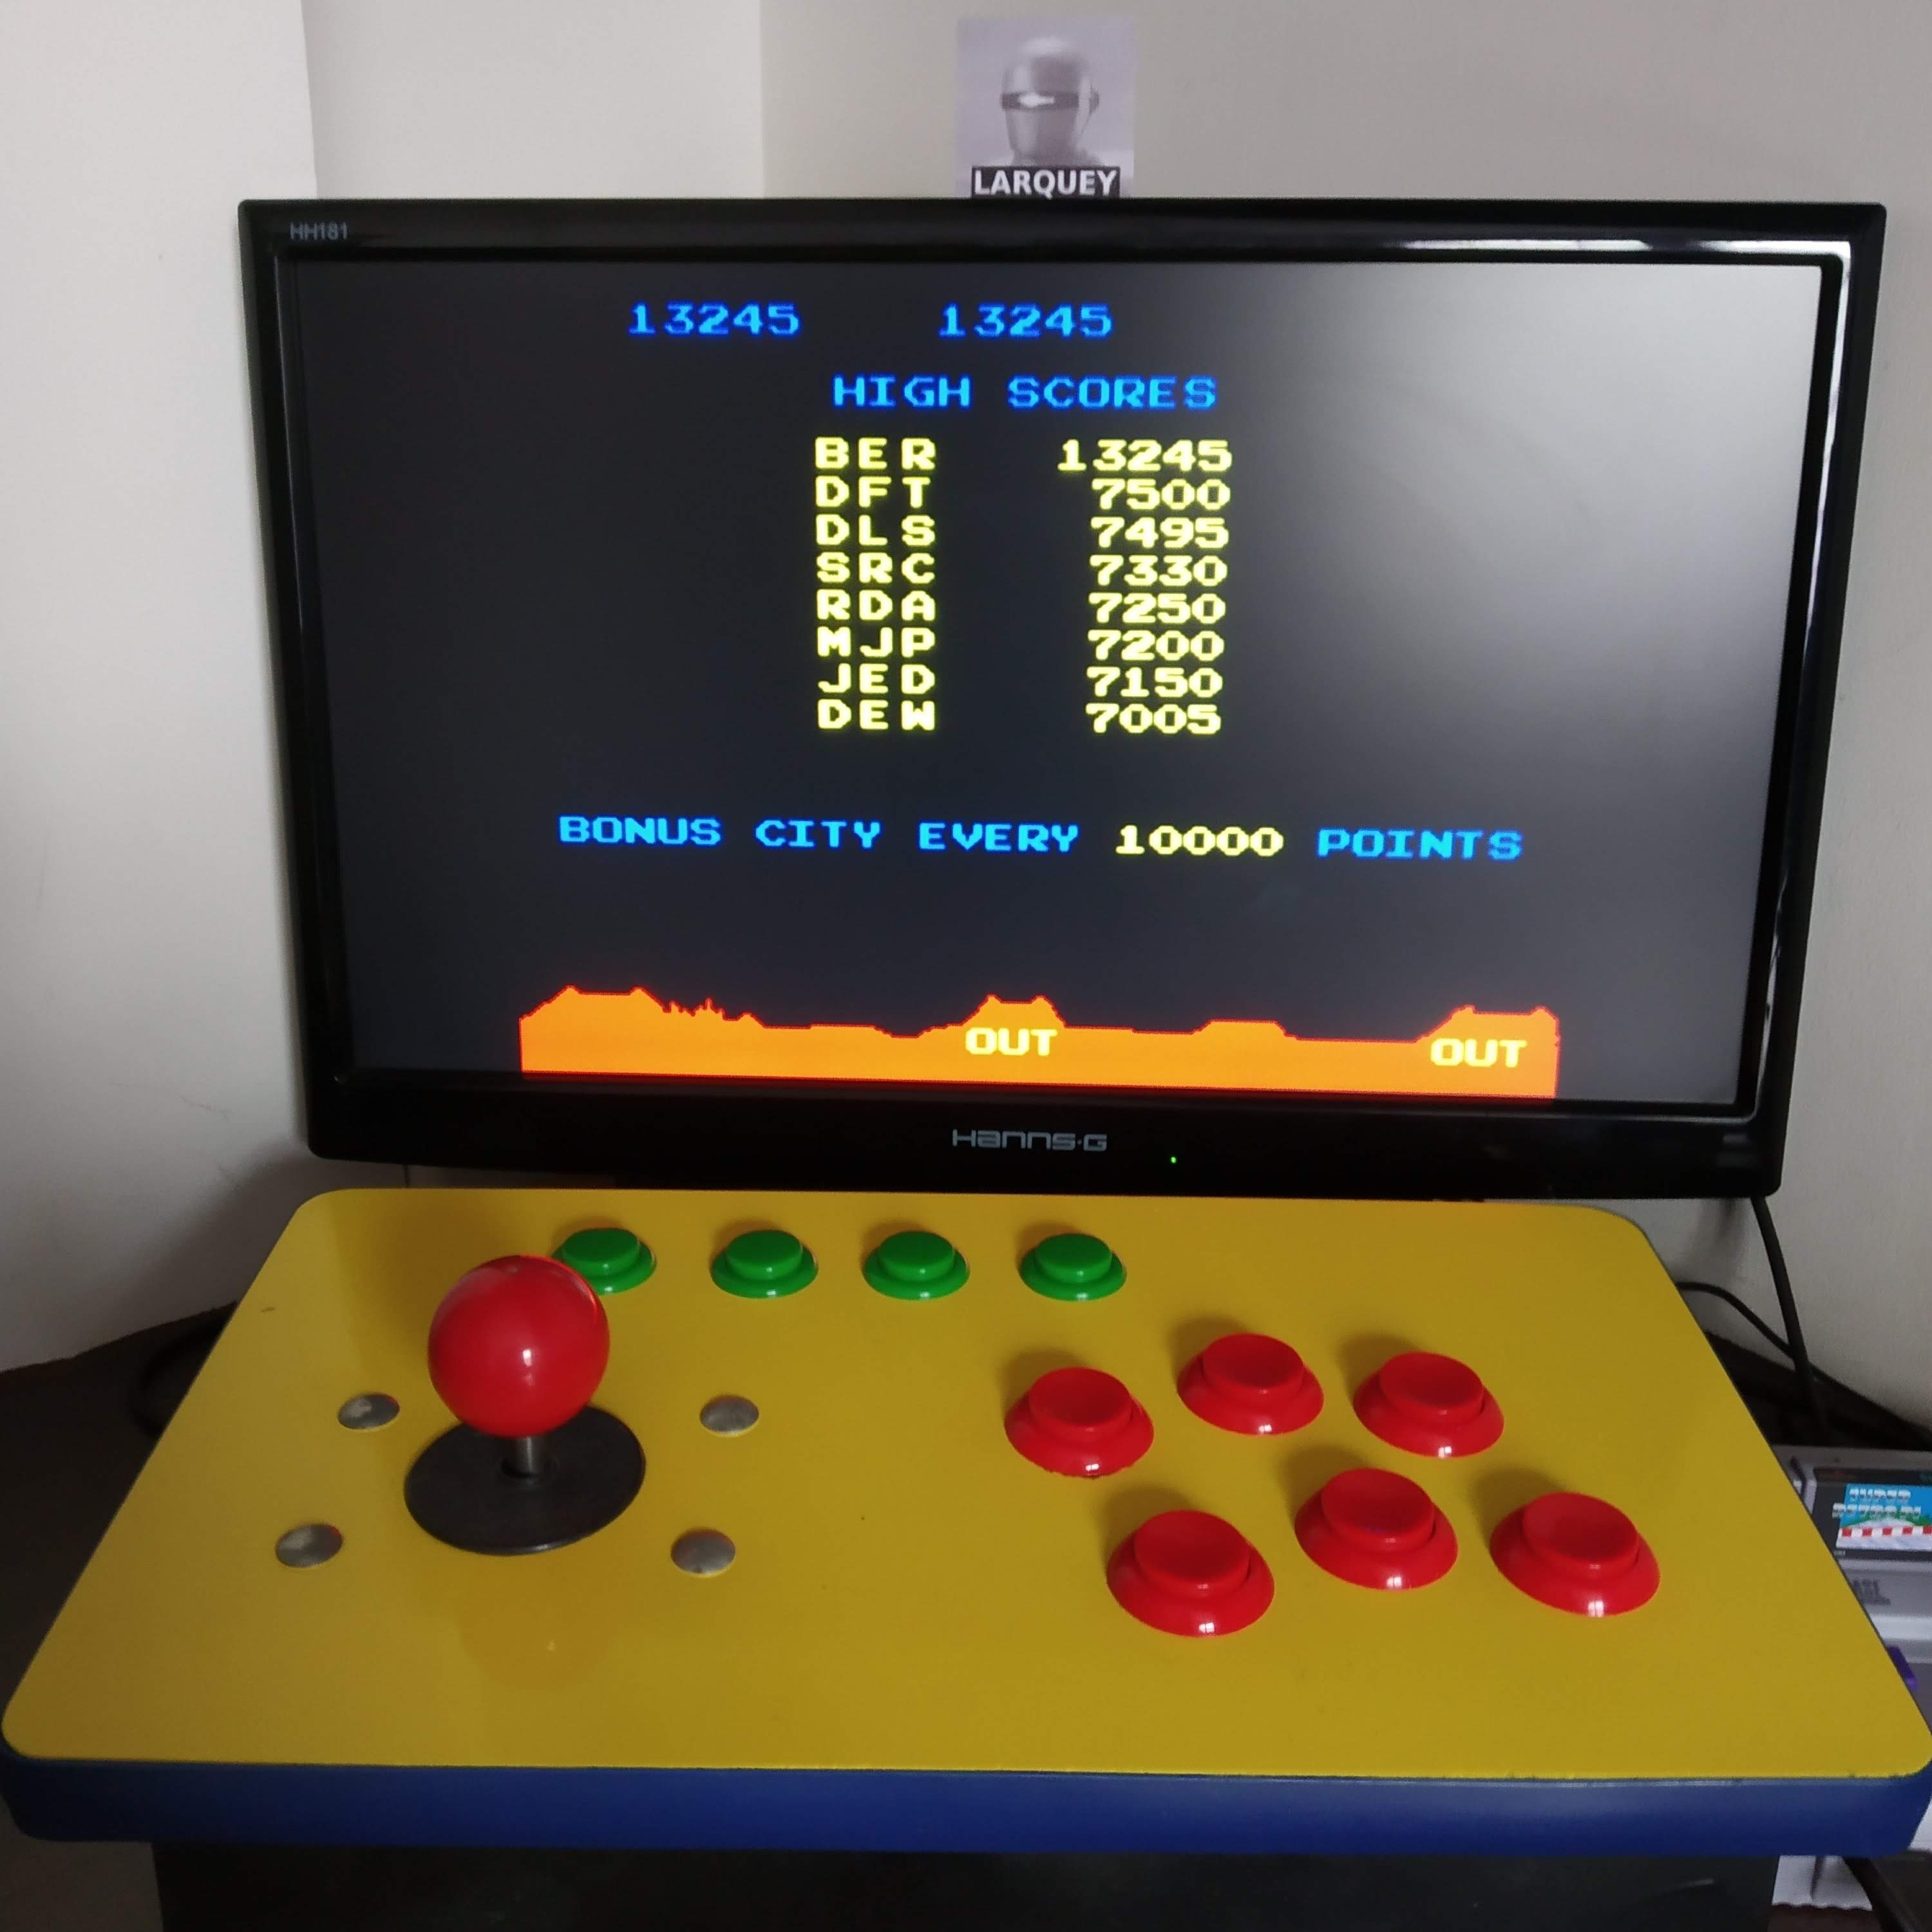 Larquey: Arcade`s Greatest Hits: The Atari Collection 1: Missile Command (SNES/Super Famicom Emulated) 13,245 points on 2020-08-16 07:36:26